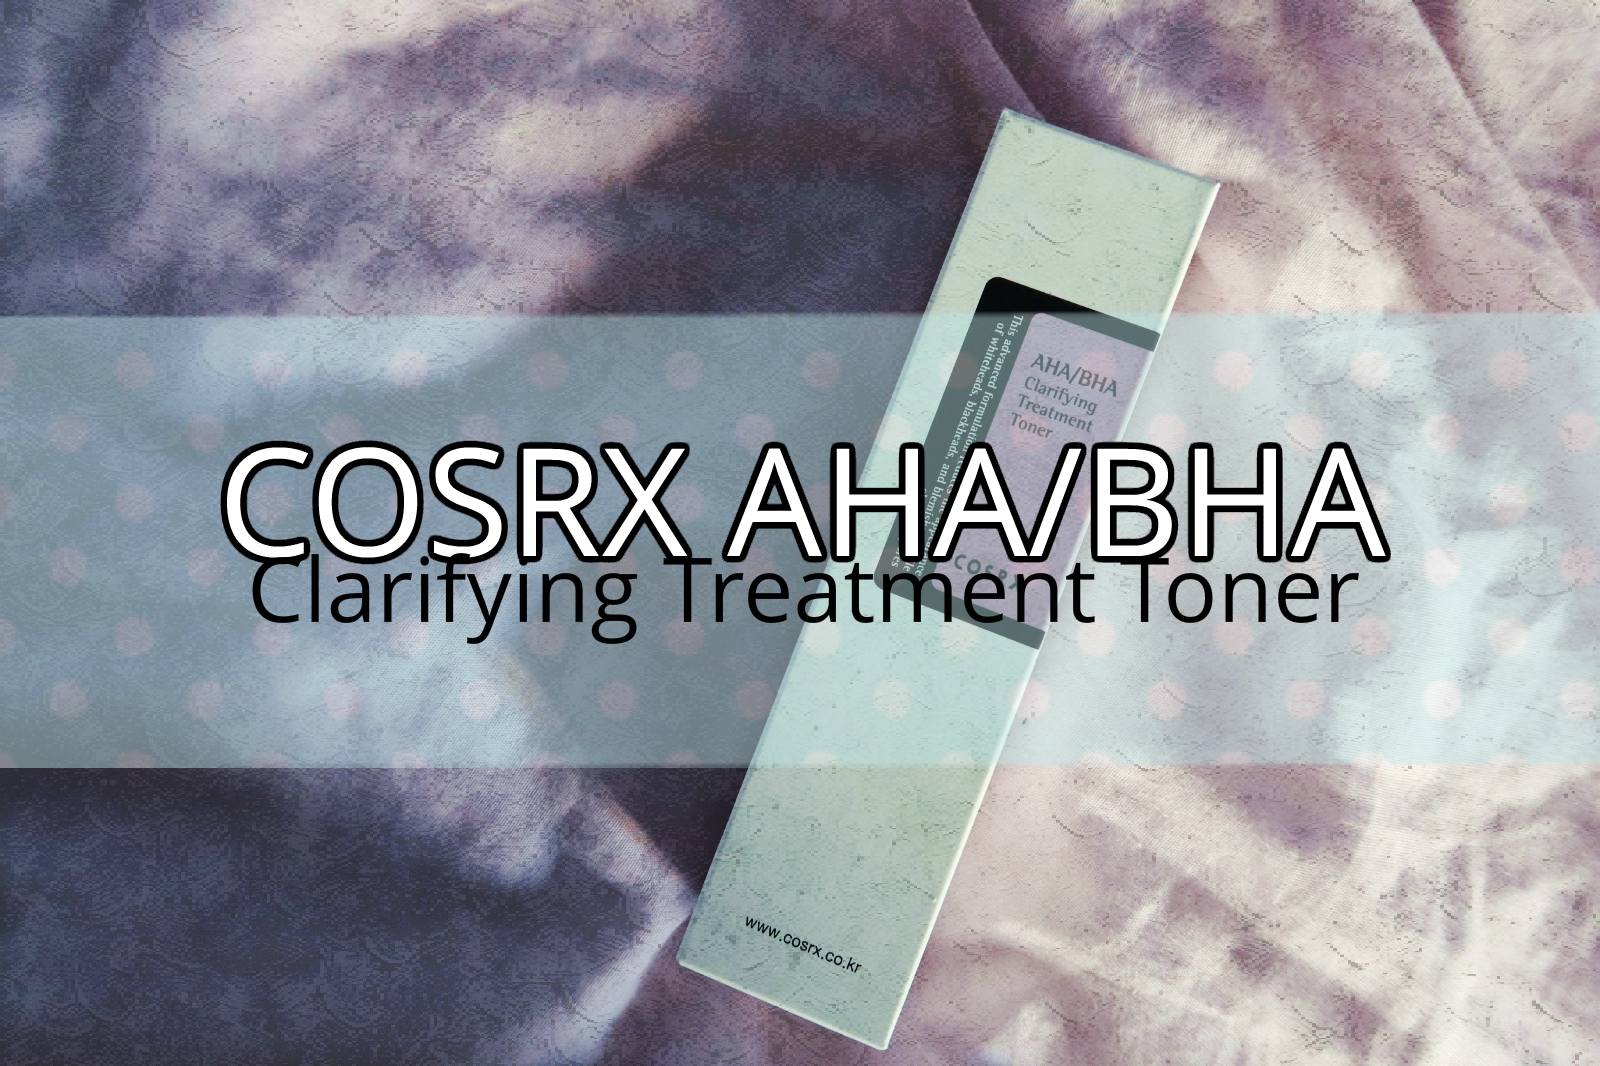 Review Cosrx Aha Bha Clarifying Treatment Toner Lisa Tenshi 150ml At The Beginning Id Like To Point Out That Products Can Be Easily Found In Polish Online Shops Which Im Really Happy About